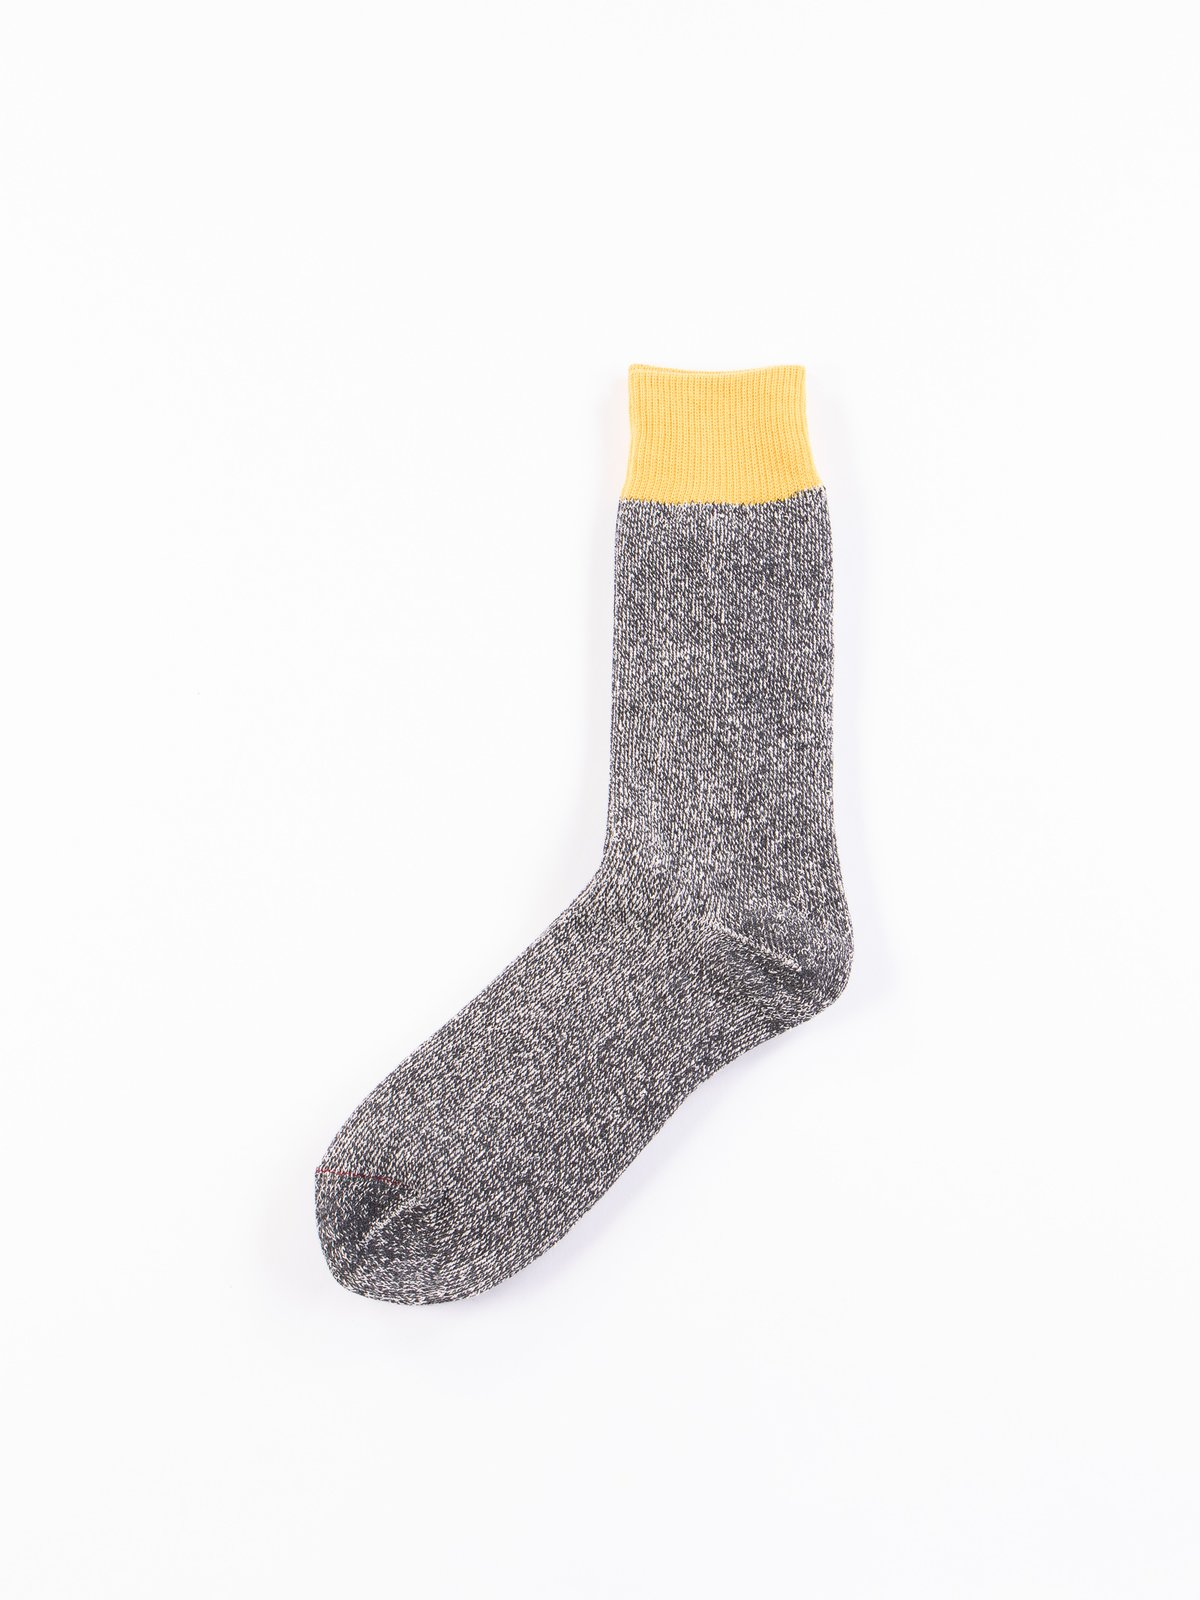 Yellow/Charcoal Double Face Socks - Image 1